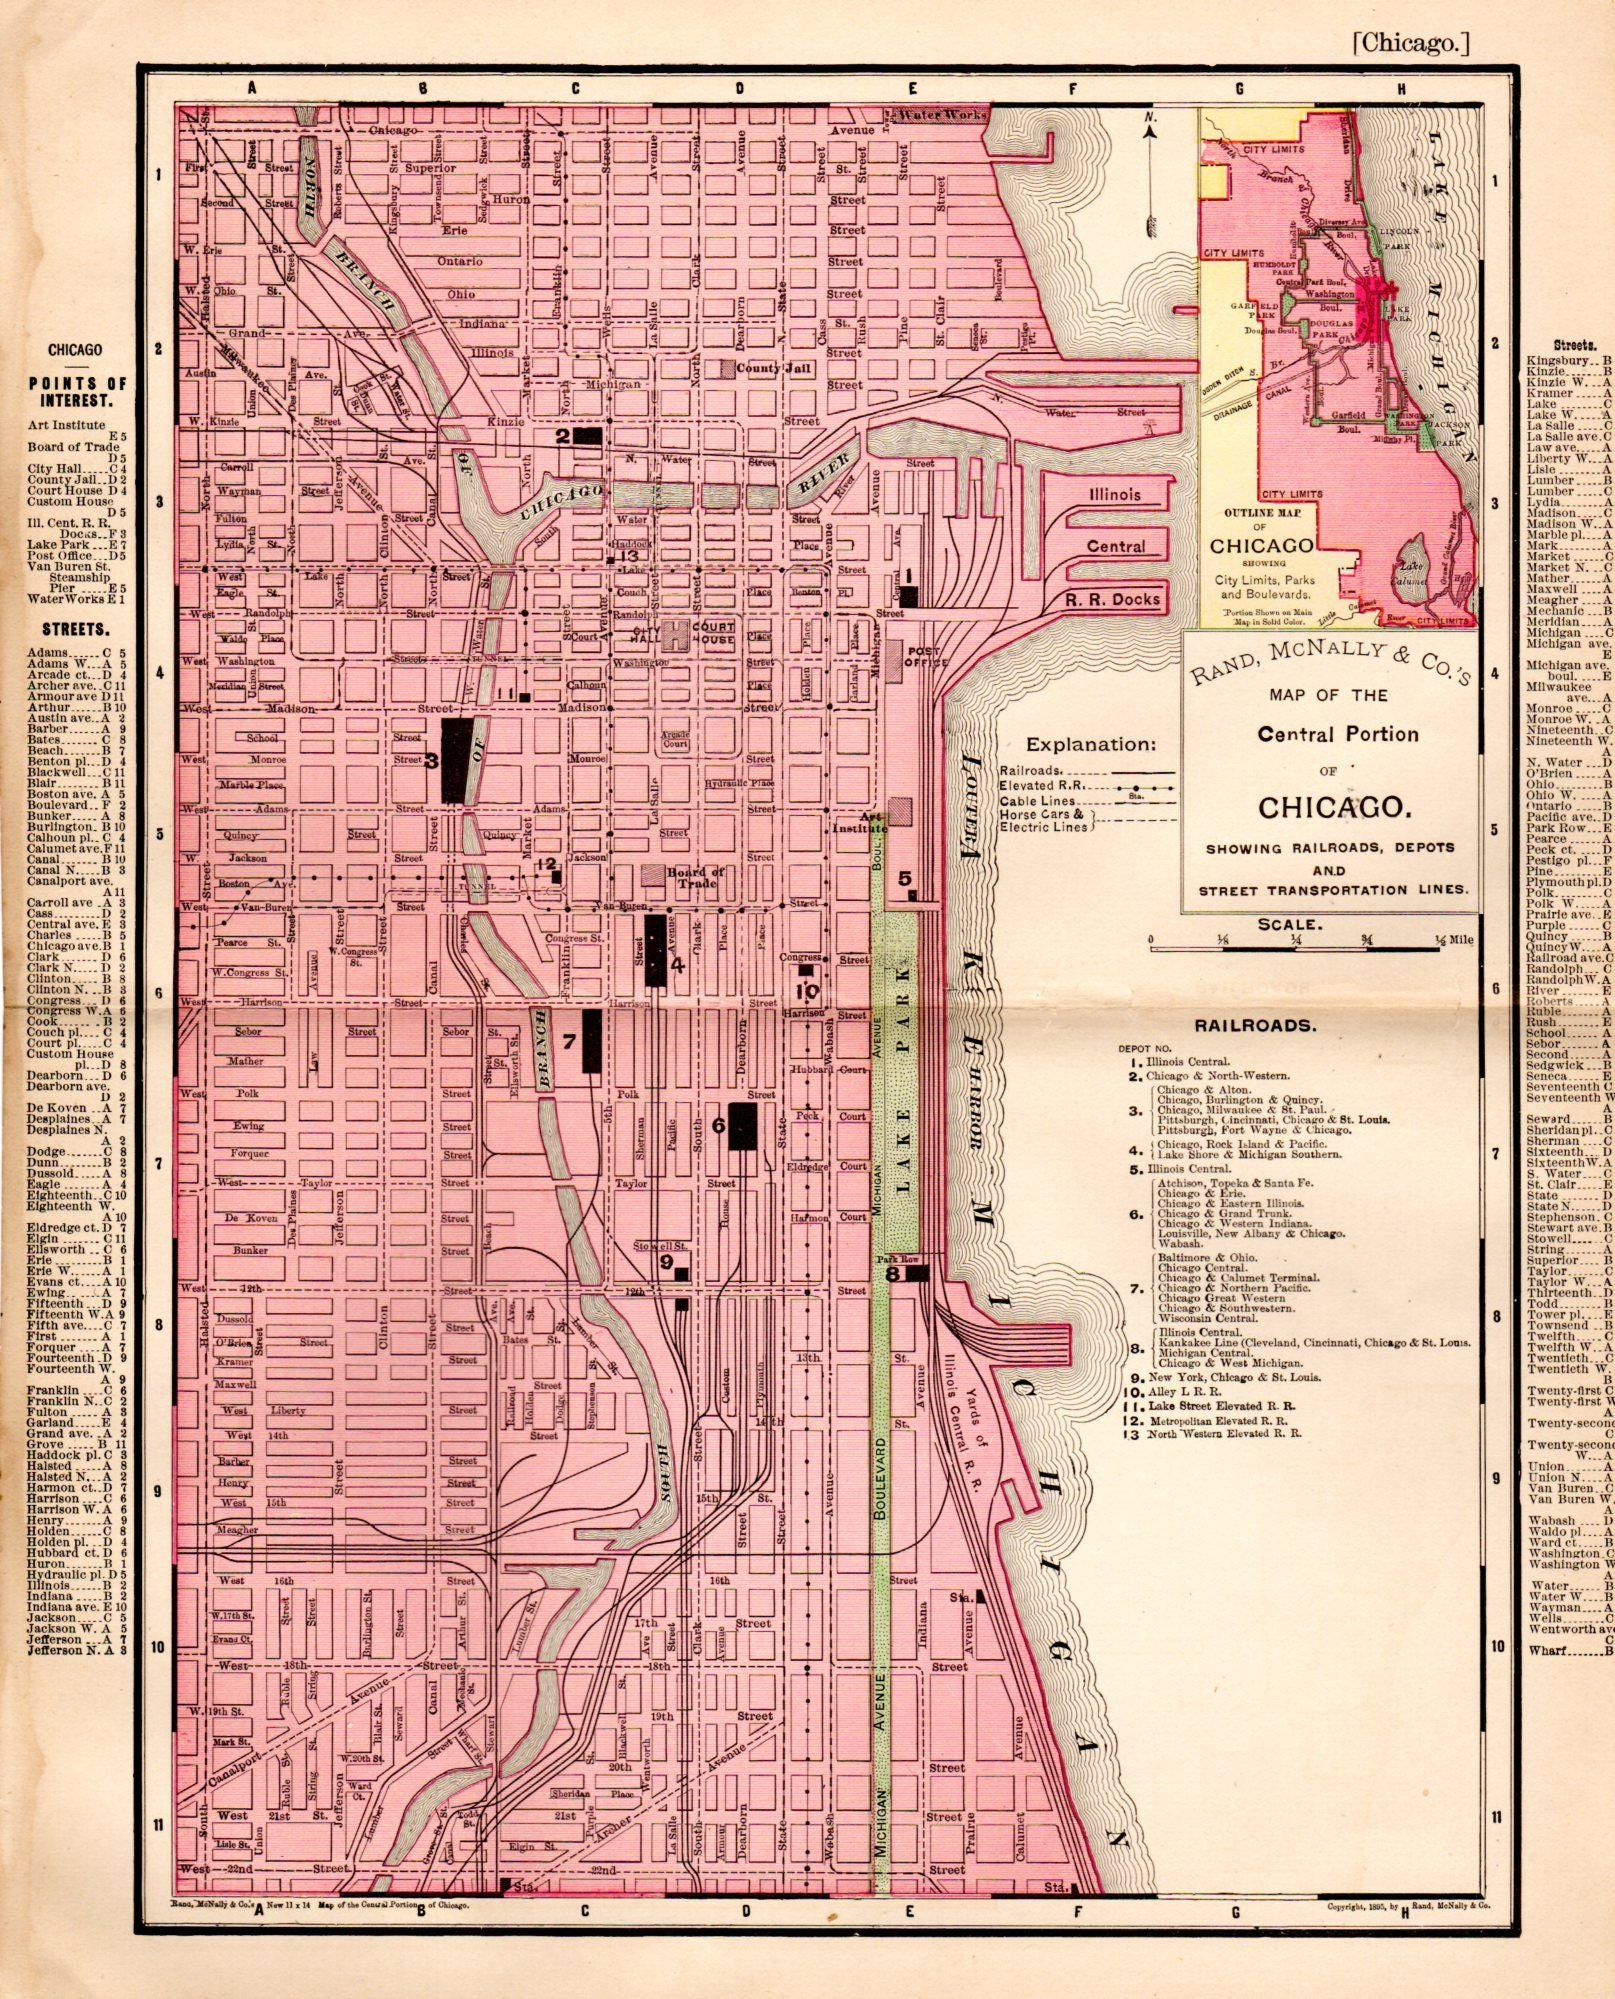 1897 Antique Chicago Map, Vintage Chicago Map, Map of ... on usa map va, usa map sd, usa map dc, usa map in milwaukee, usa map of cincinnati, usa map ai, usa map new jersey, usa map re, usa map fl, usa map louisiana, usa map springfield, usa map ke, usa map washington, usa map oh, usa map indiana, usa map chicago, usa map ia,